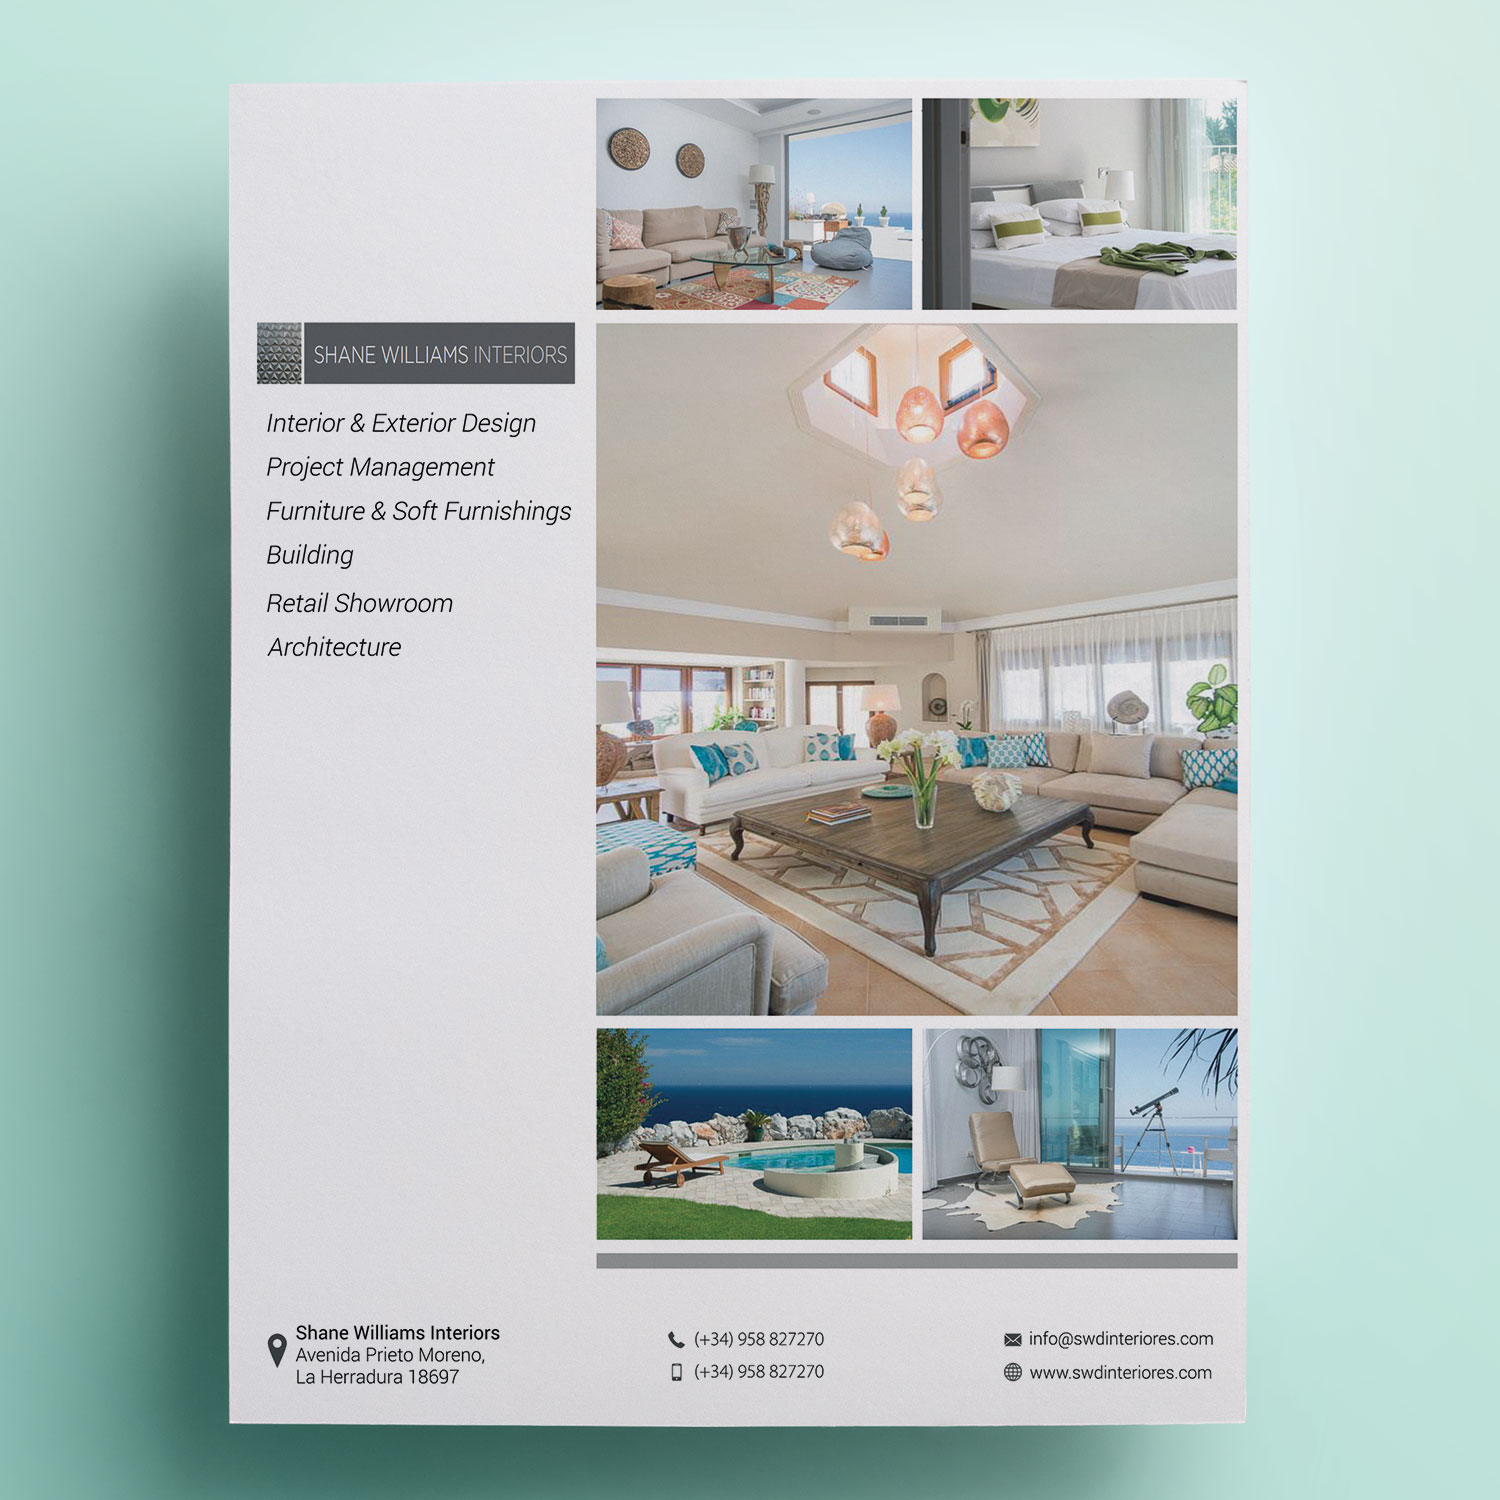 Advertisement Design By Aether Designs For This Project | Design #7833123